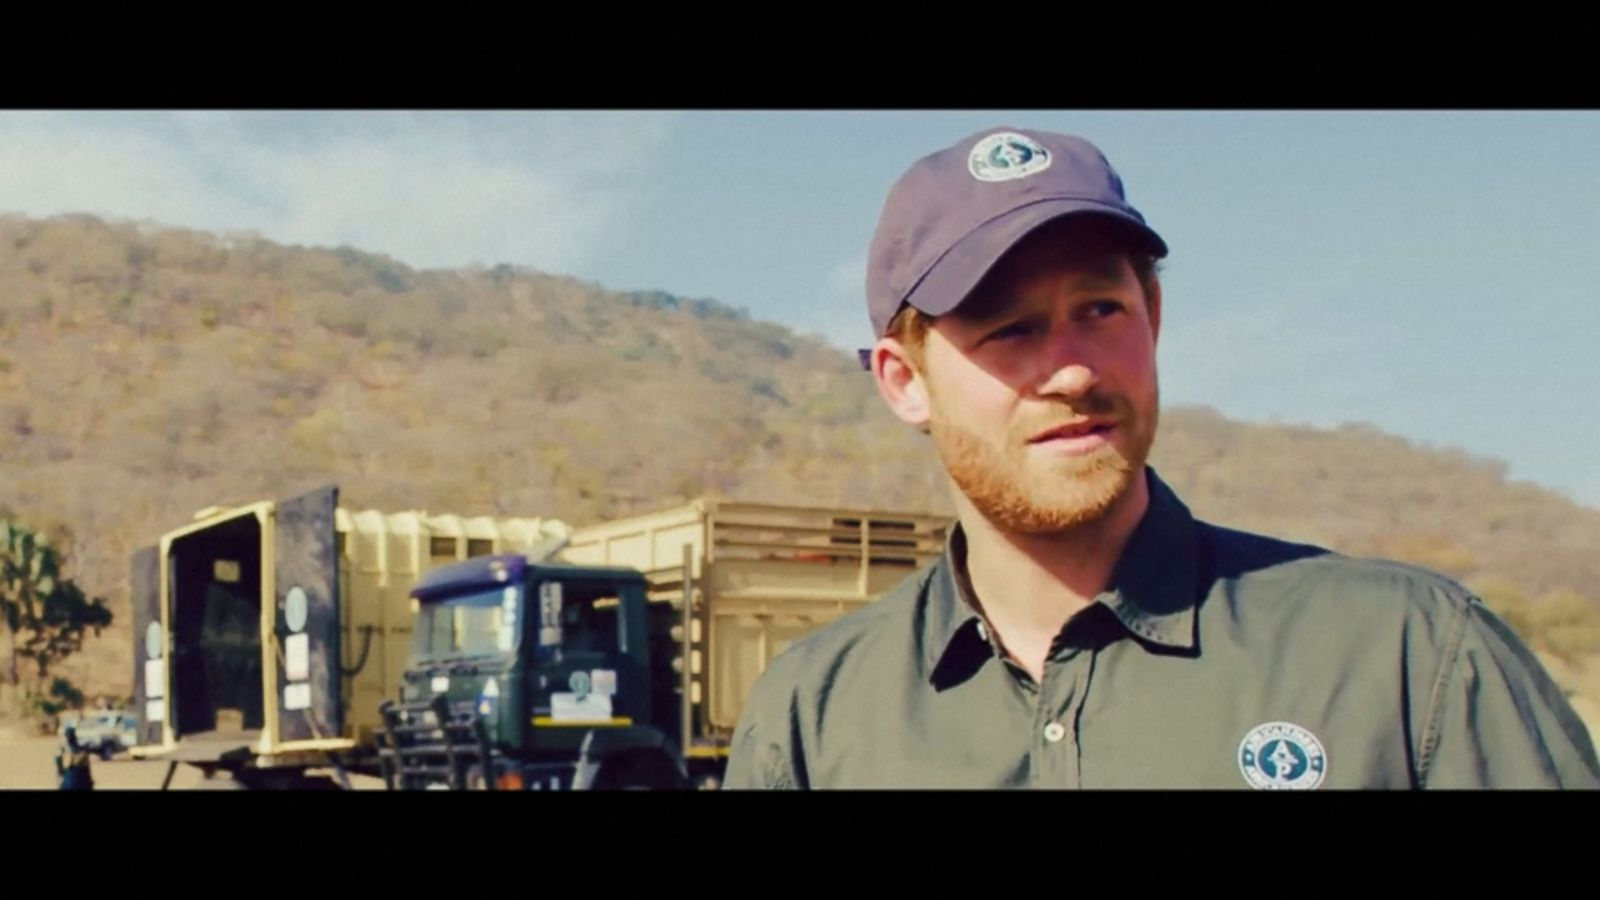 African Parks has released a video and images of Prince Harry's three week stint in Malawi this summer, where he helped with a large scale elephant relocation project.